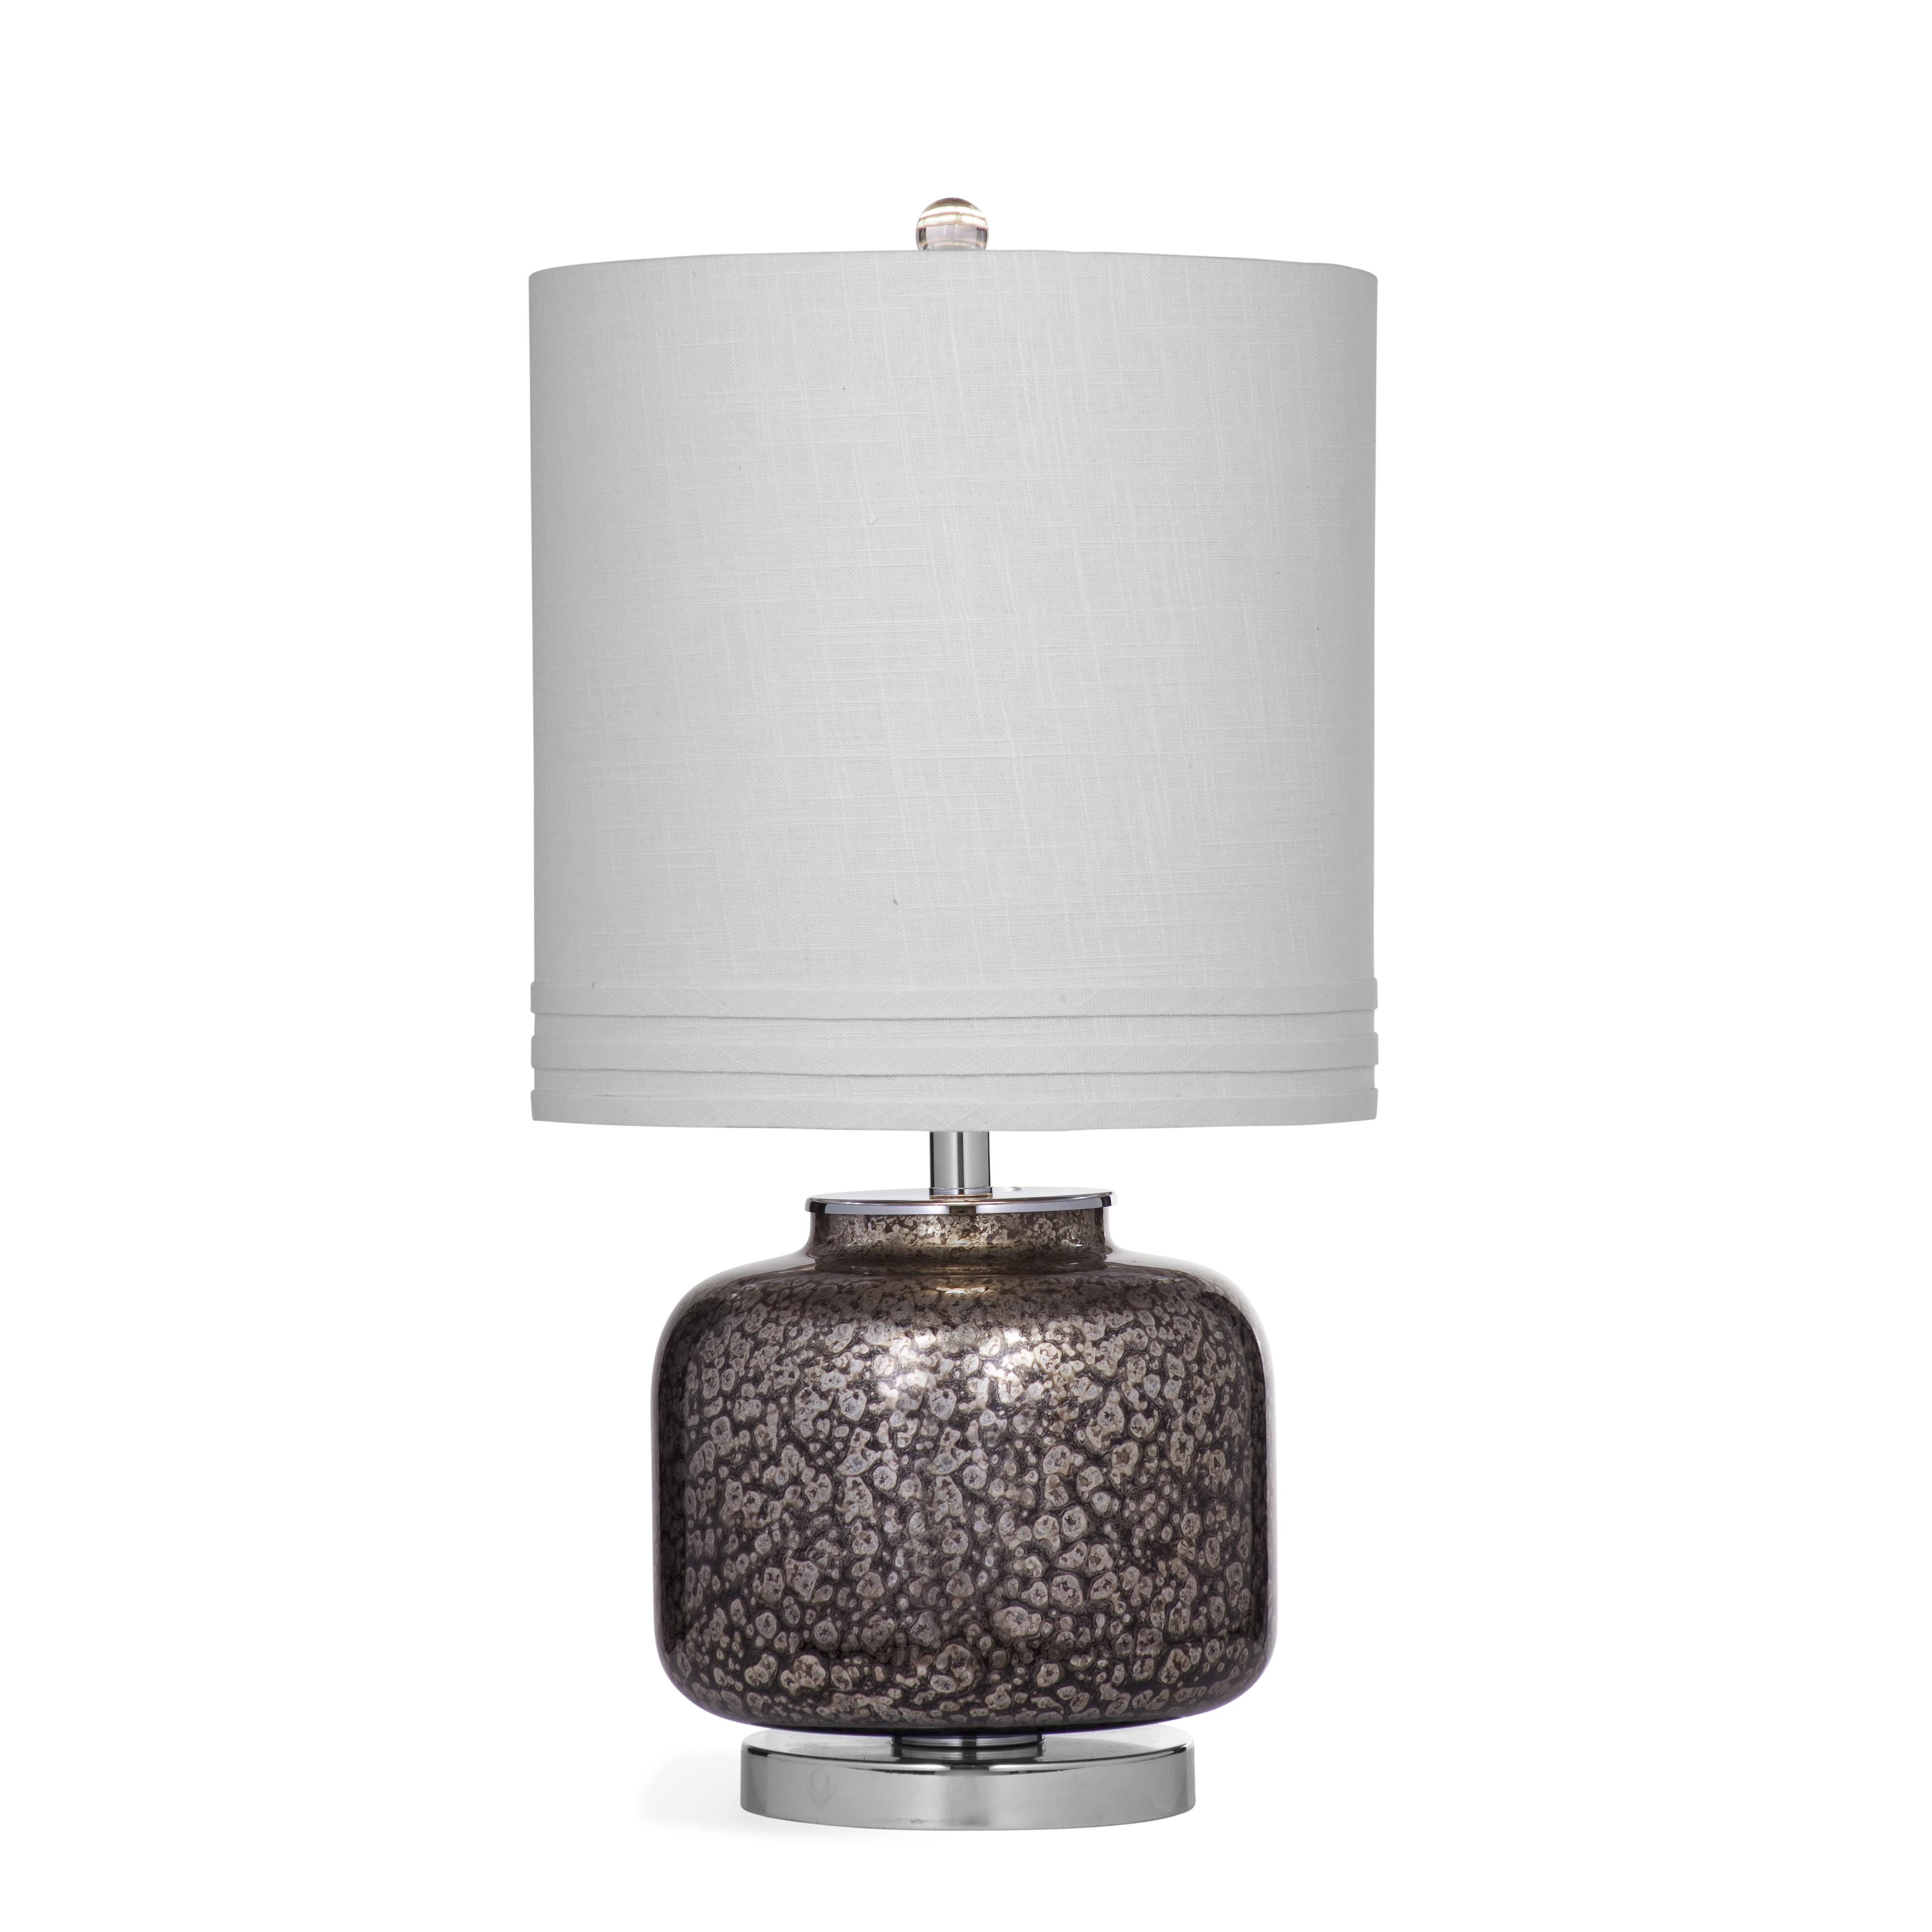 Old World Sherman Table Lamp by Bassett Mirror at Alison Craig Home Furnishings